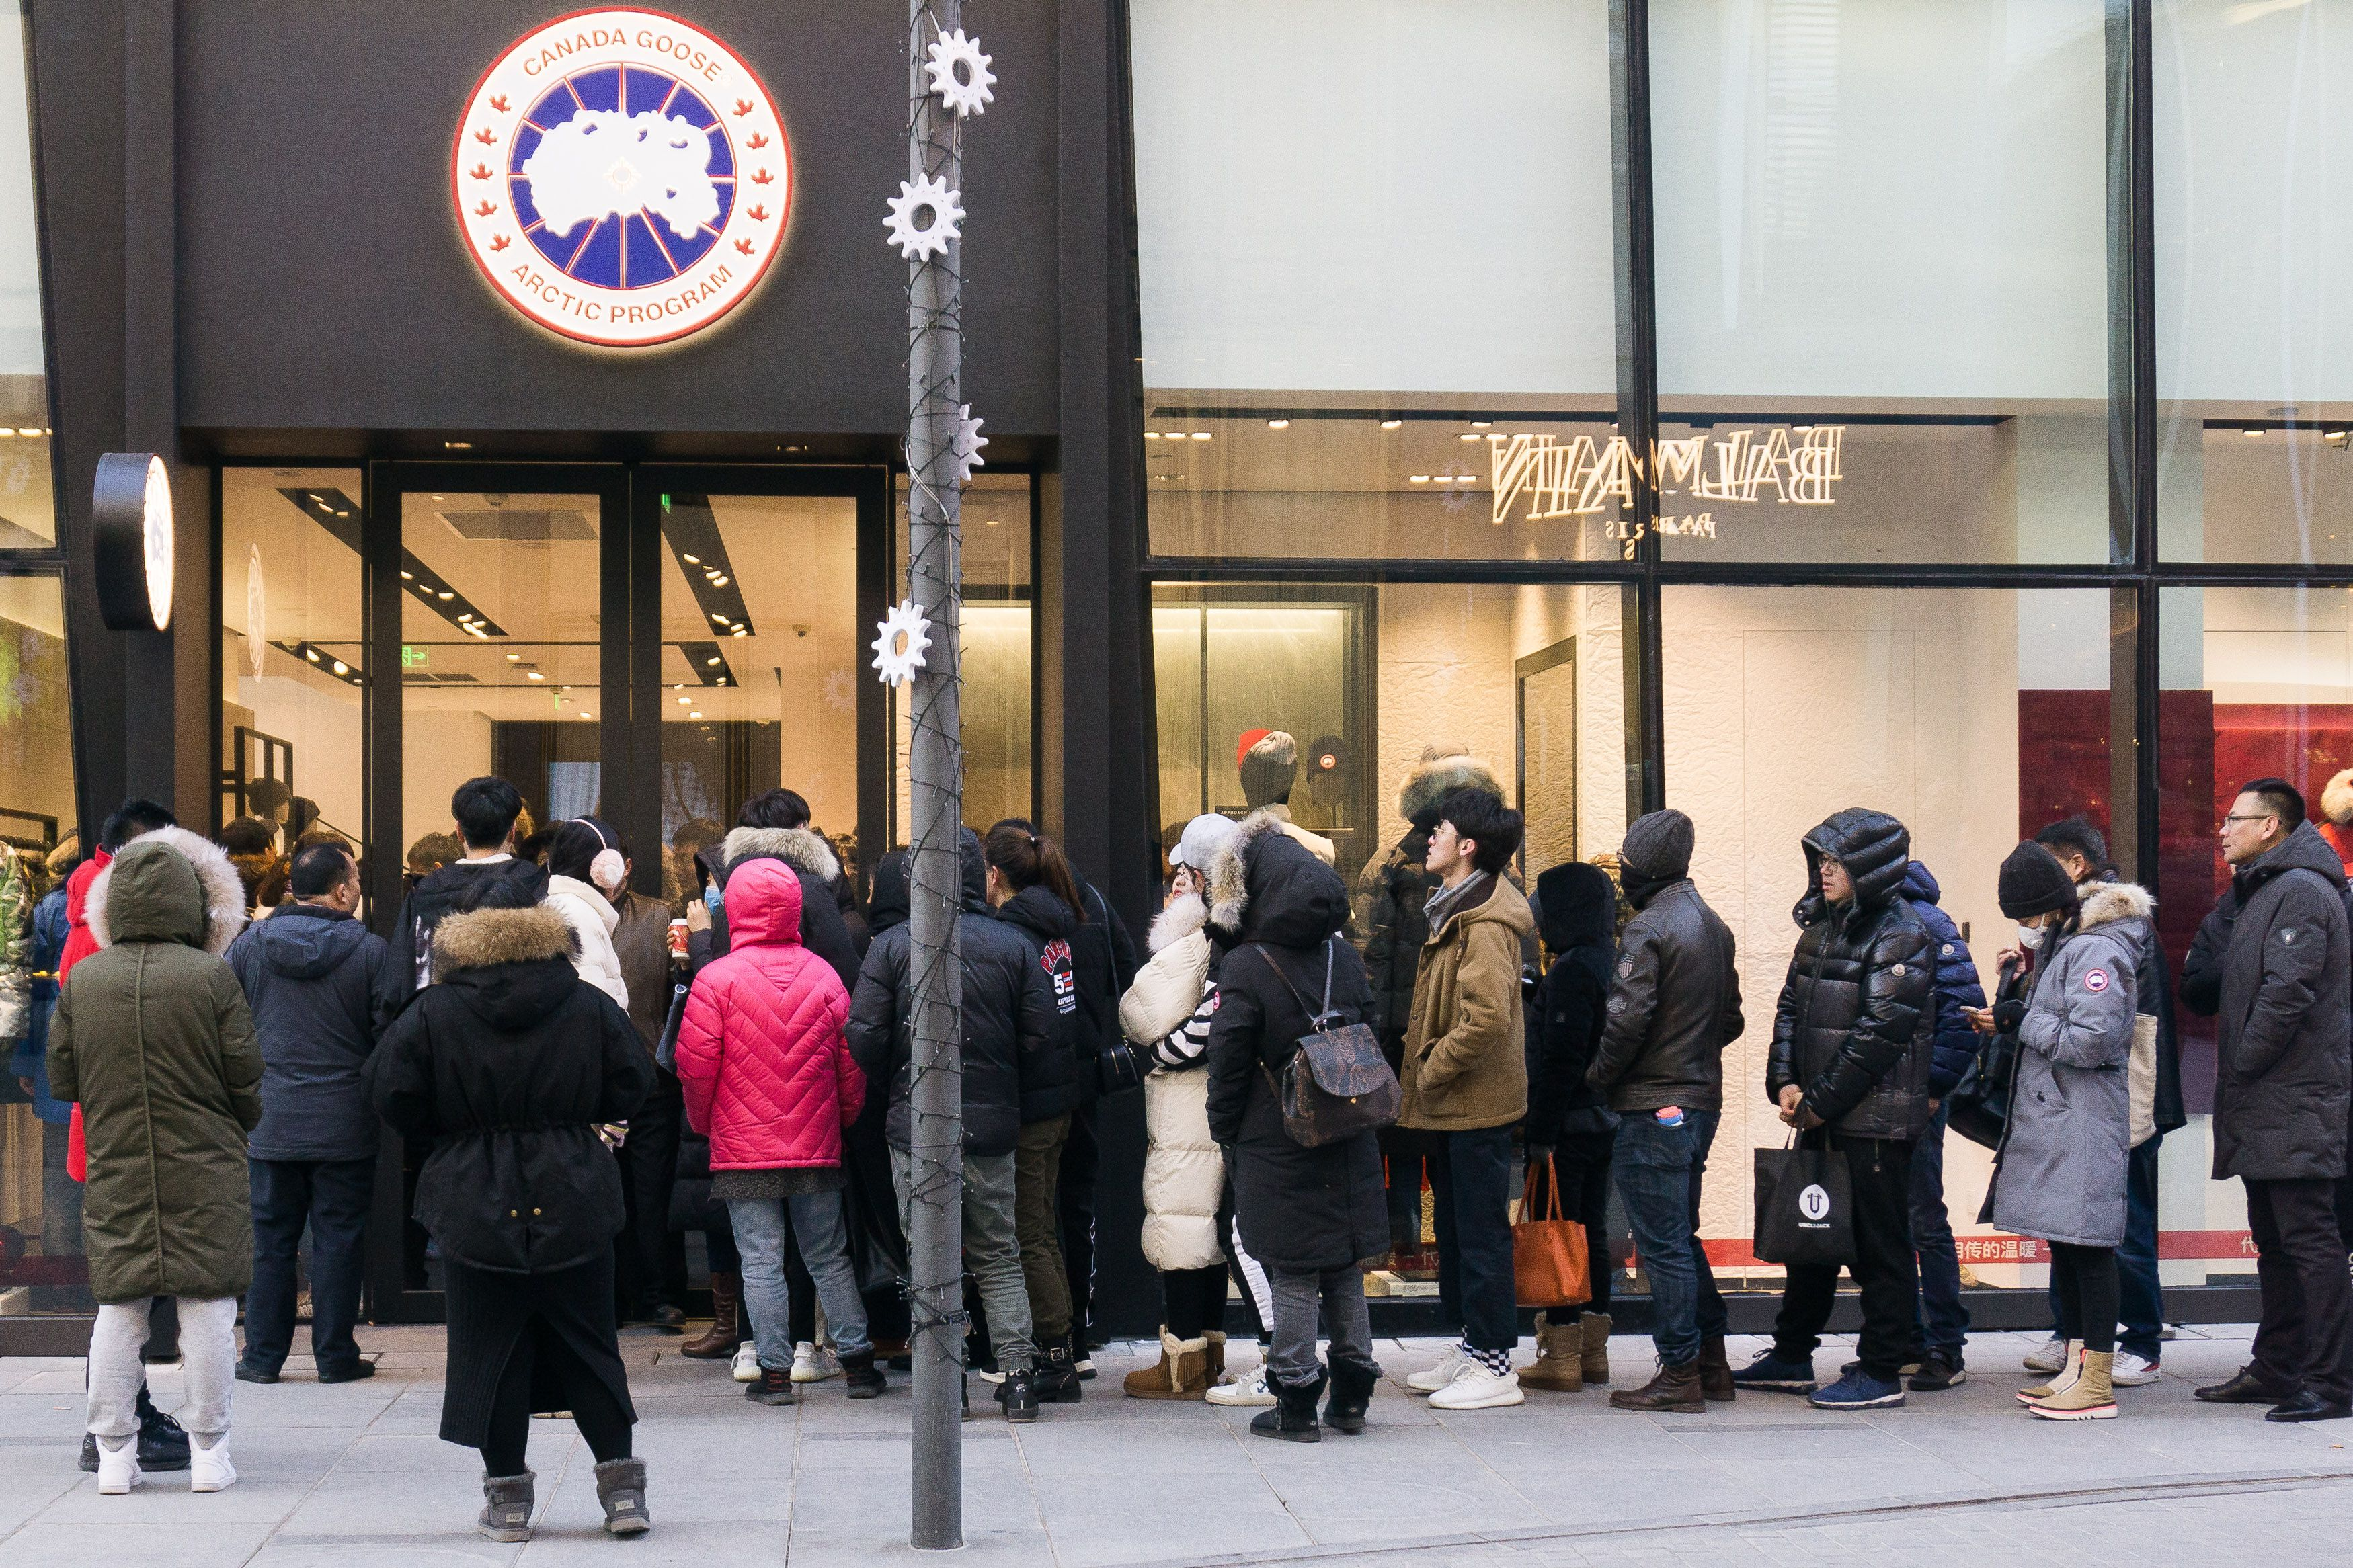 People line up at Canada Goose's first Flagship Store in Beijing.Canada Goose Flagship Store Opening, Beijing, China - 30 Dec 2018